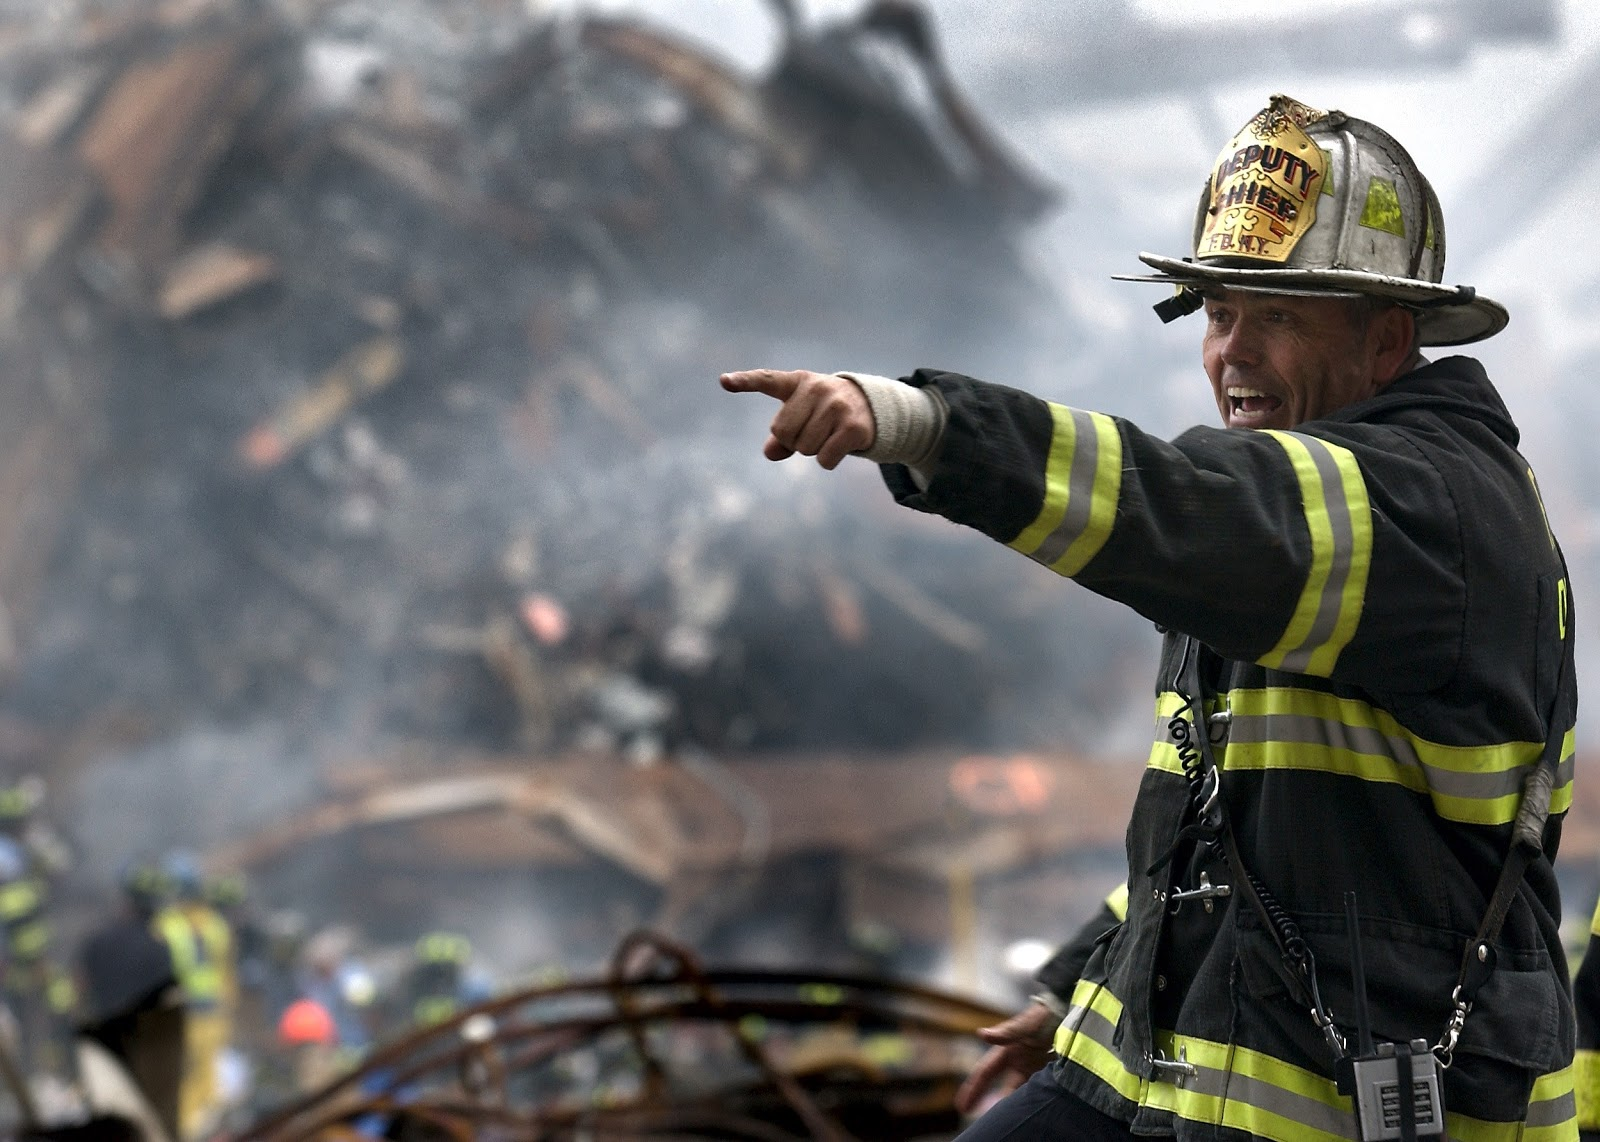 a fire fighter pointing while he stands in front of smoldering rubble